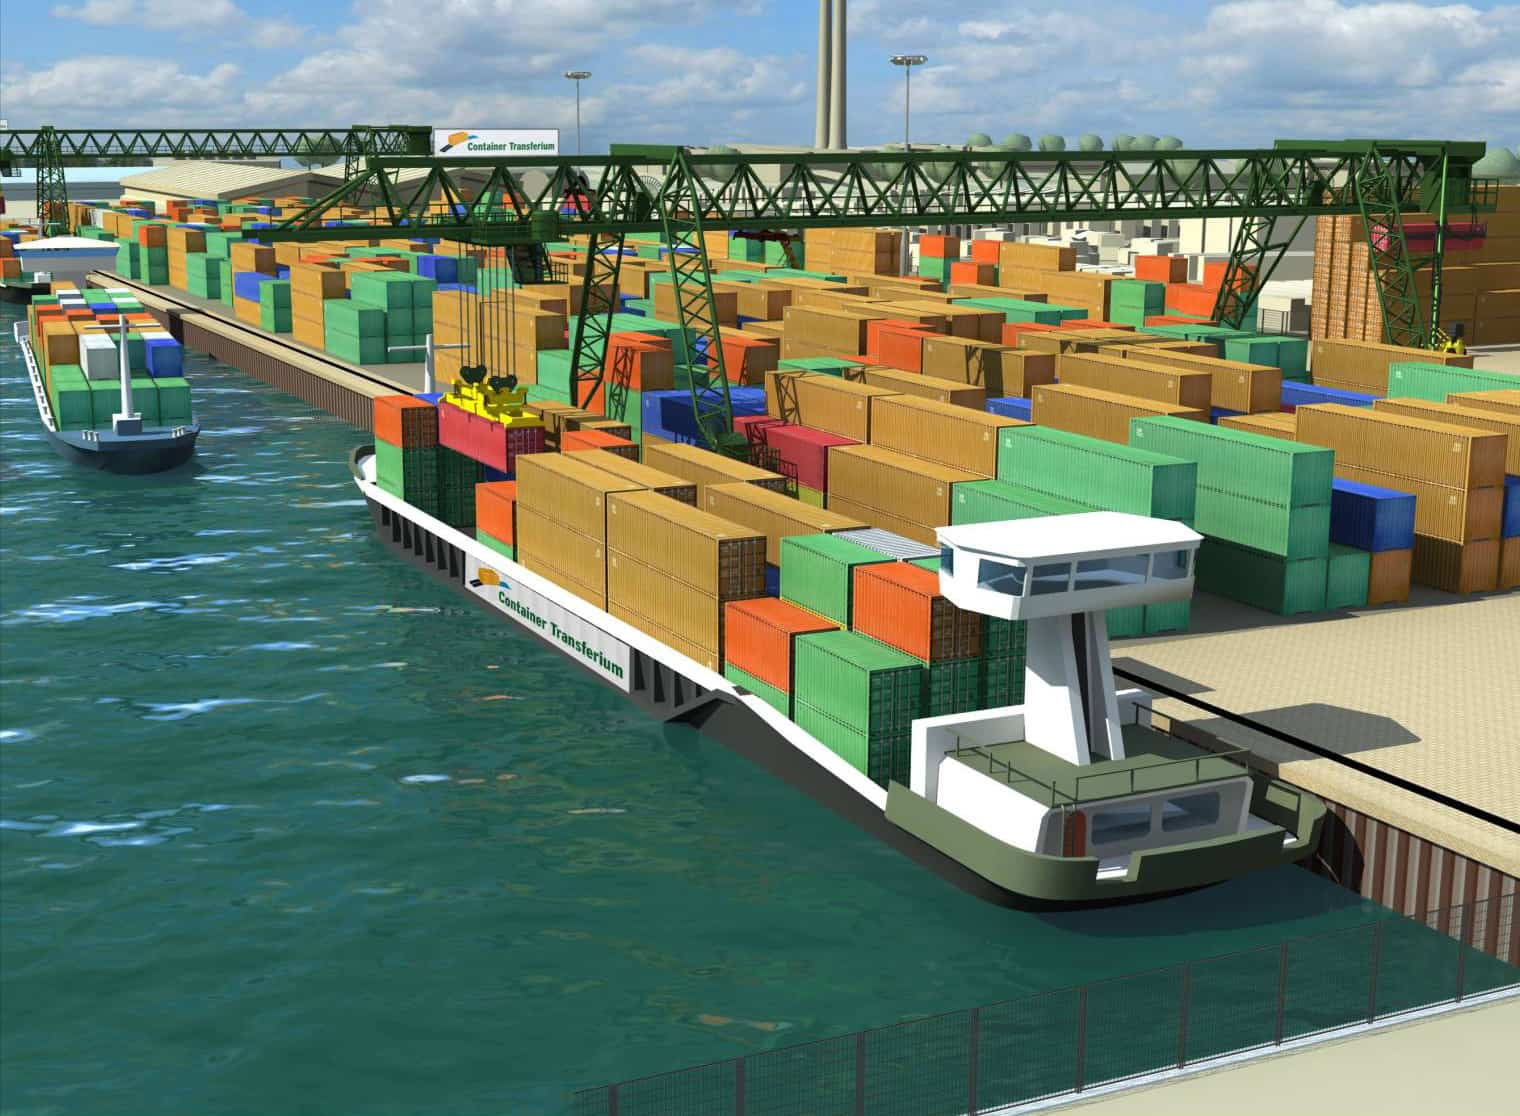 Construction begins on Container Transferium Alblasserdam